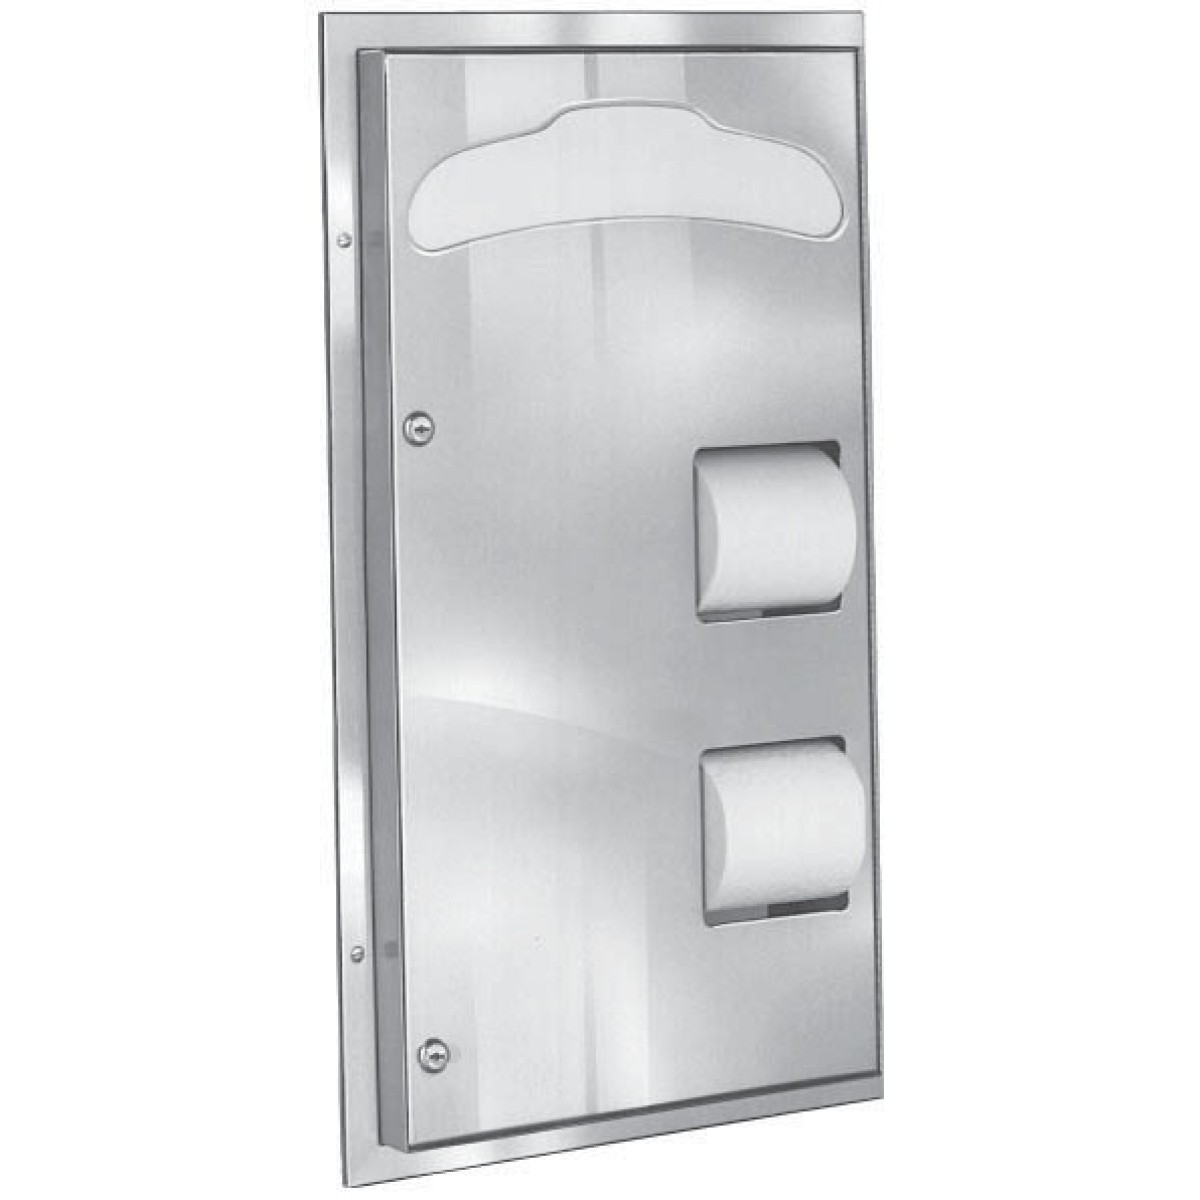 Bradley 592 Partition Mounted 2-Stall Seat Cover/Tissue Dispenser